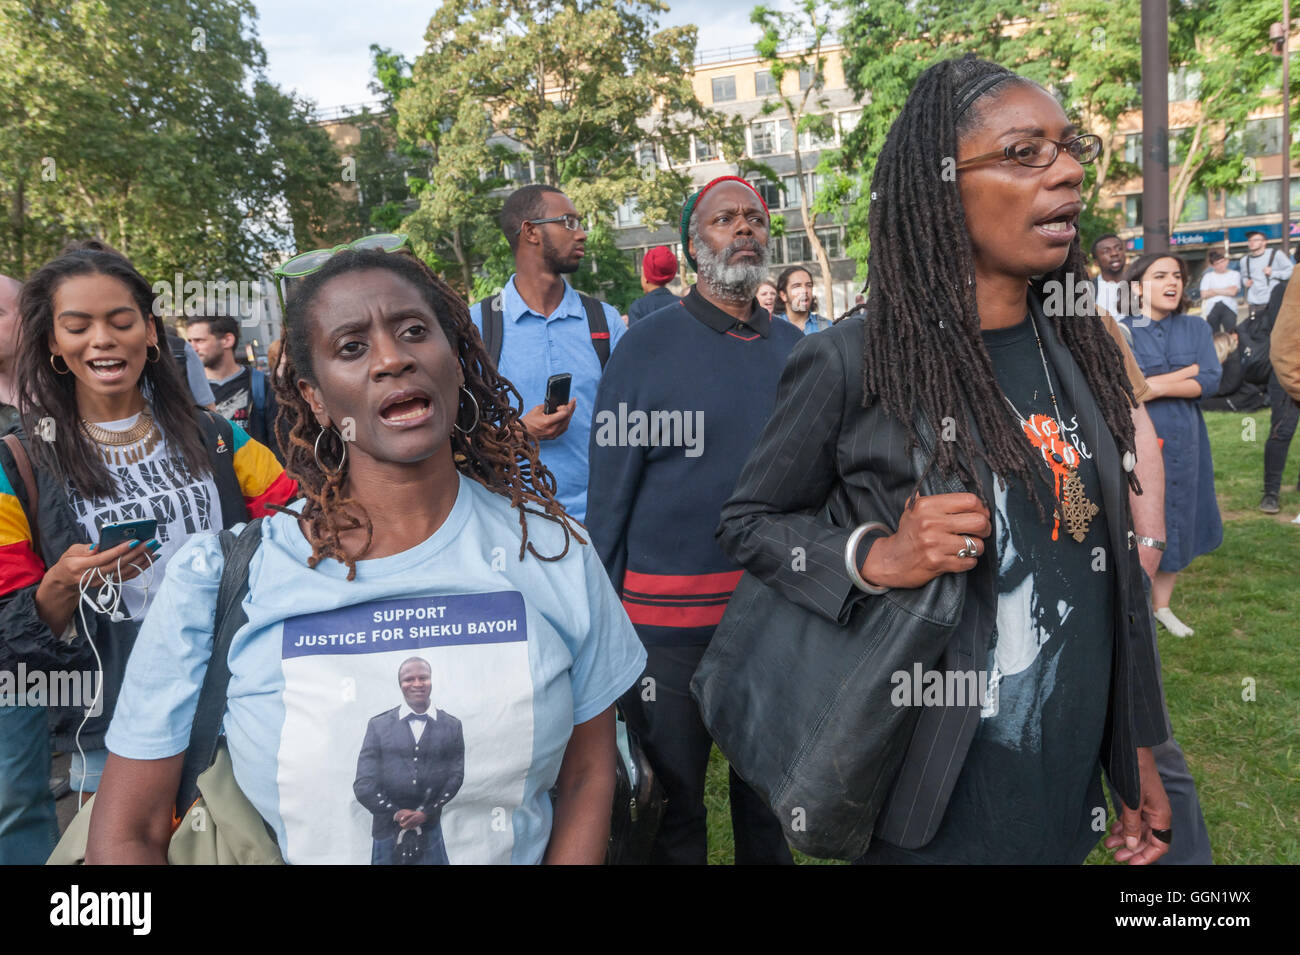 London, UK. 5th Aug, 2016. A relative of Sheku Bayoh and Marcia Rigg, the siste of Sean Rigg in the crowd assembling - Stock Image